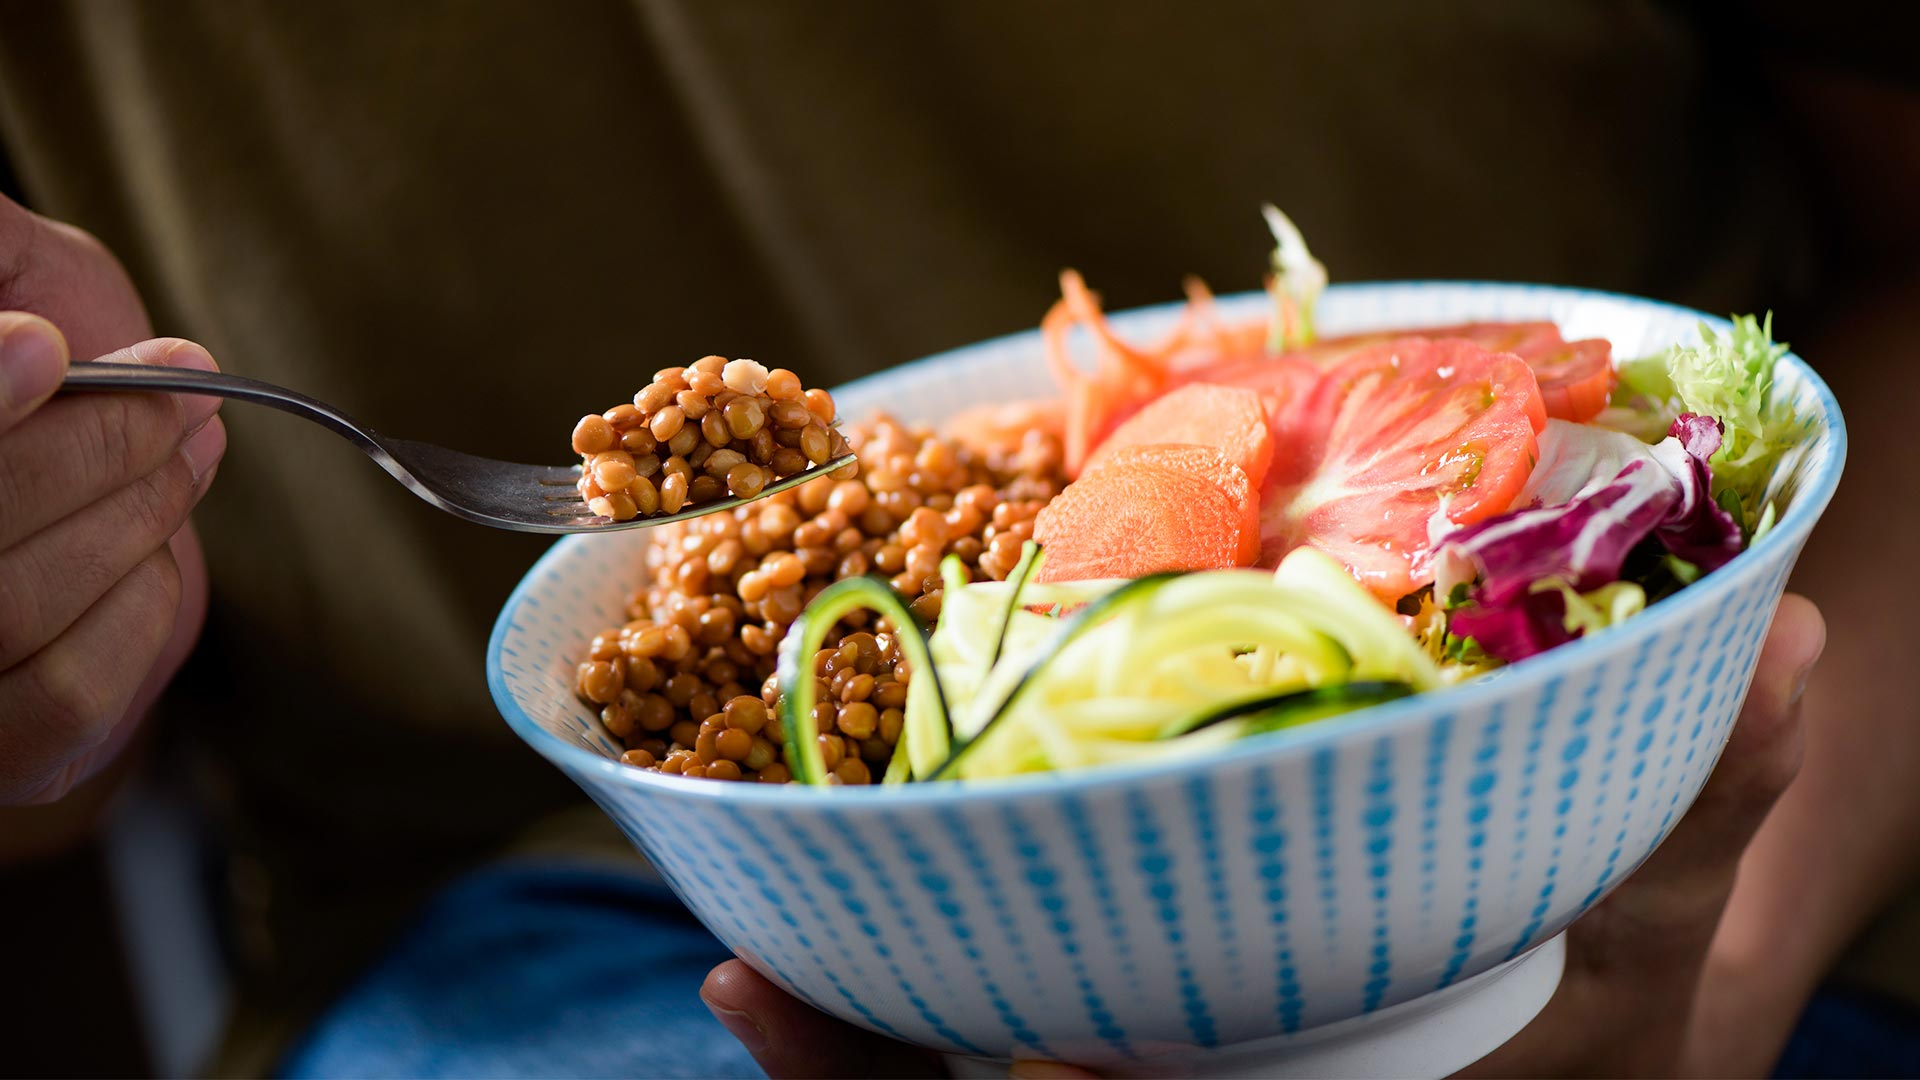 Dietary Fiber: Why It's Important and Where To Find It